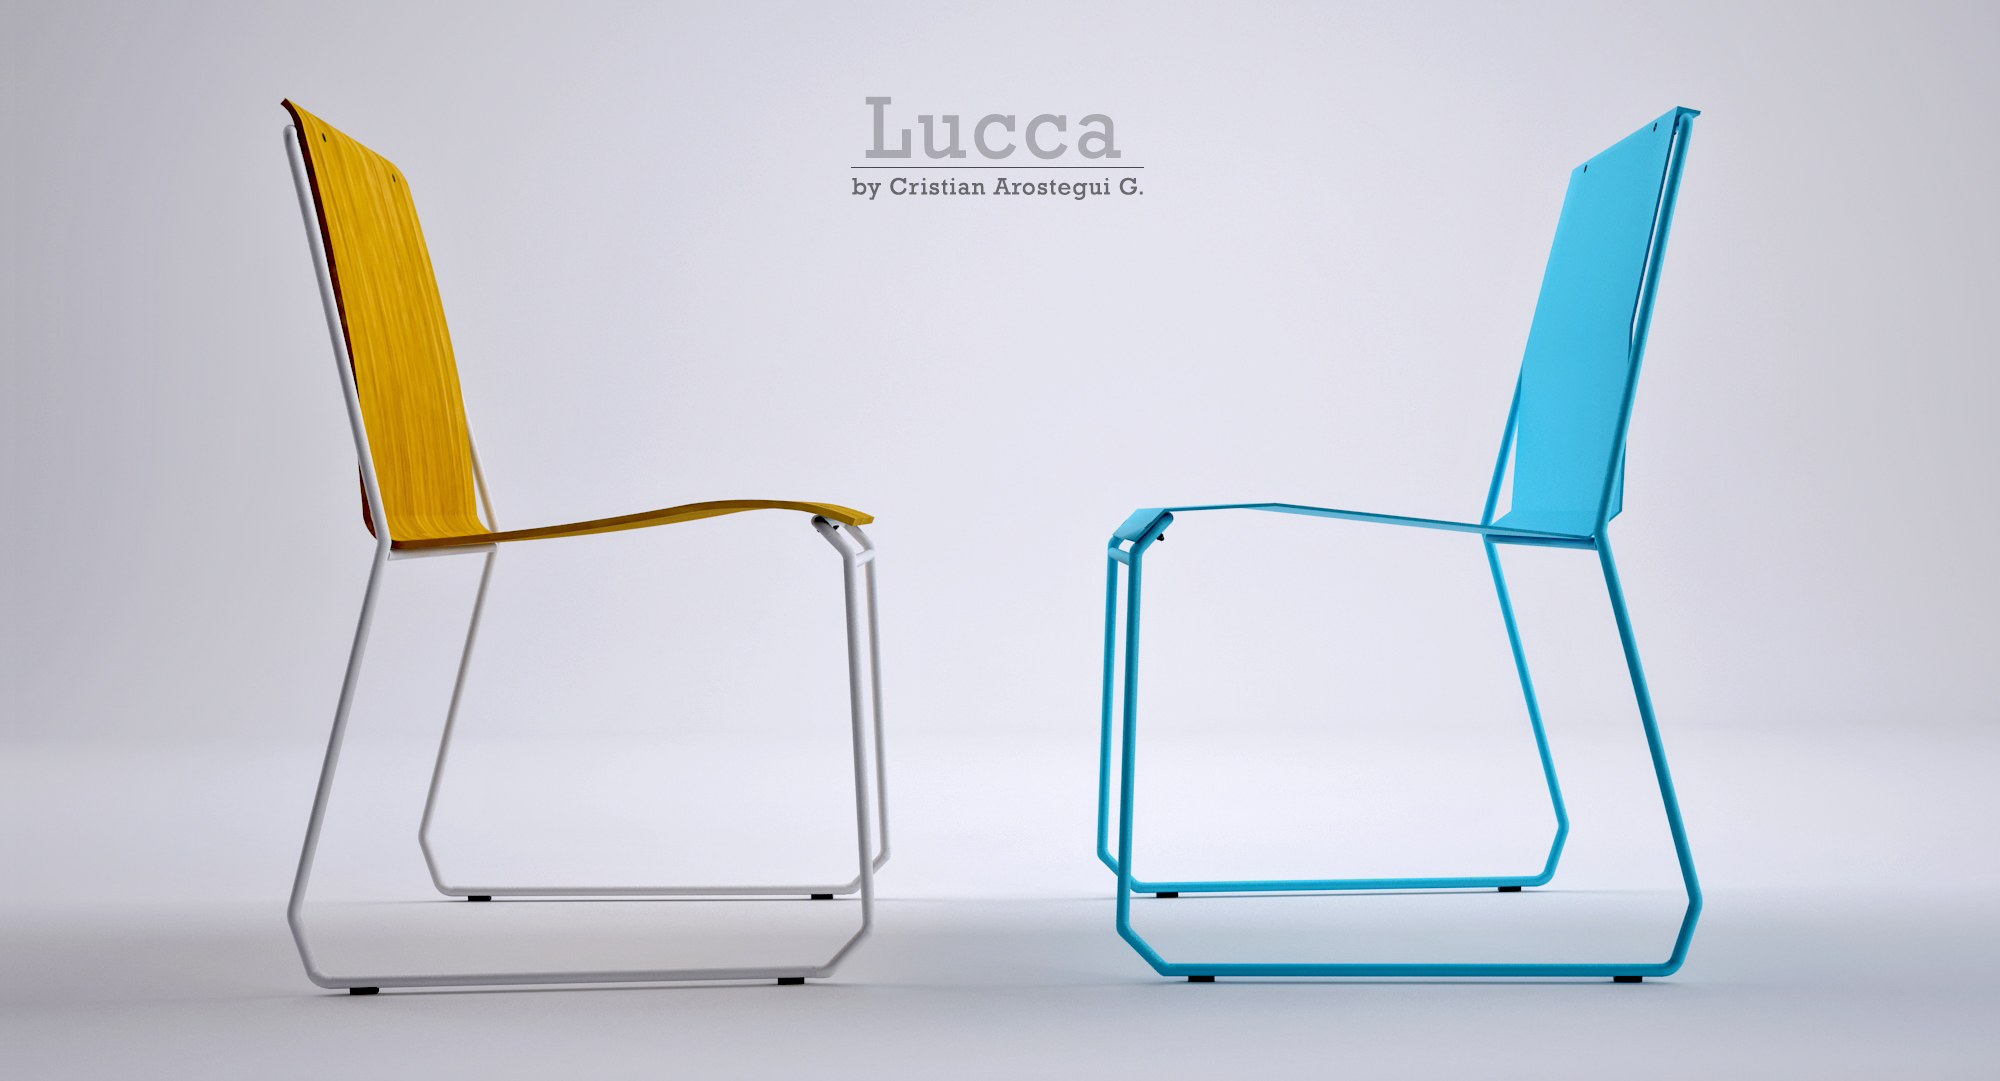 Lucca chair by Cristian Arostegui from Arostegui Studio